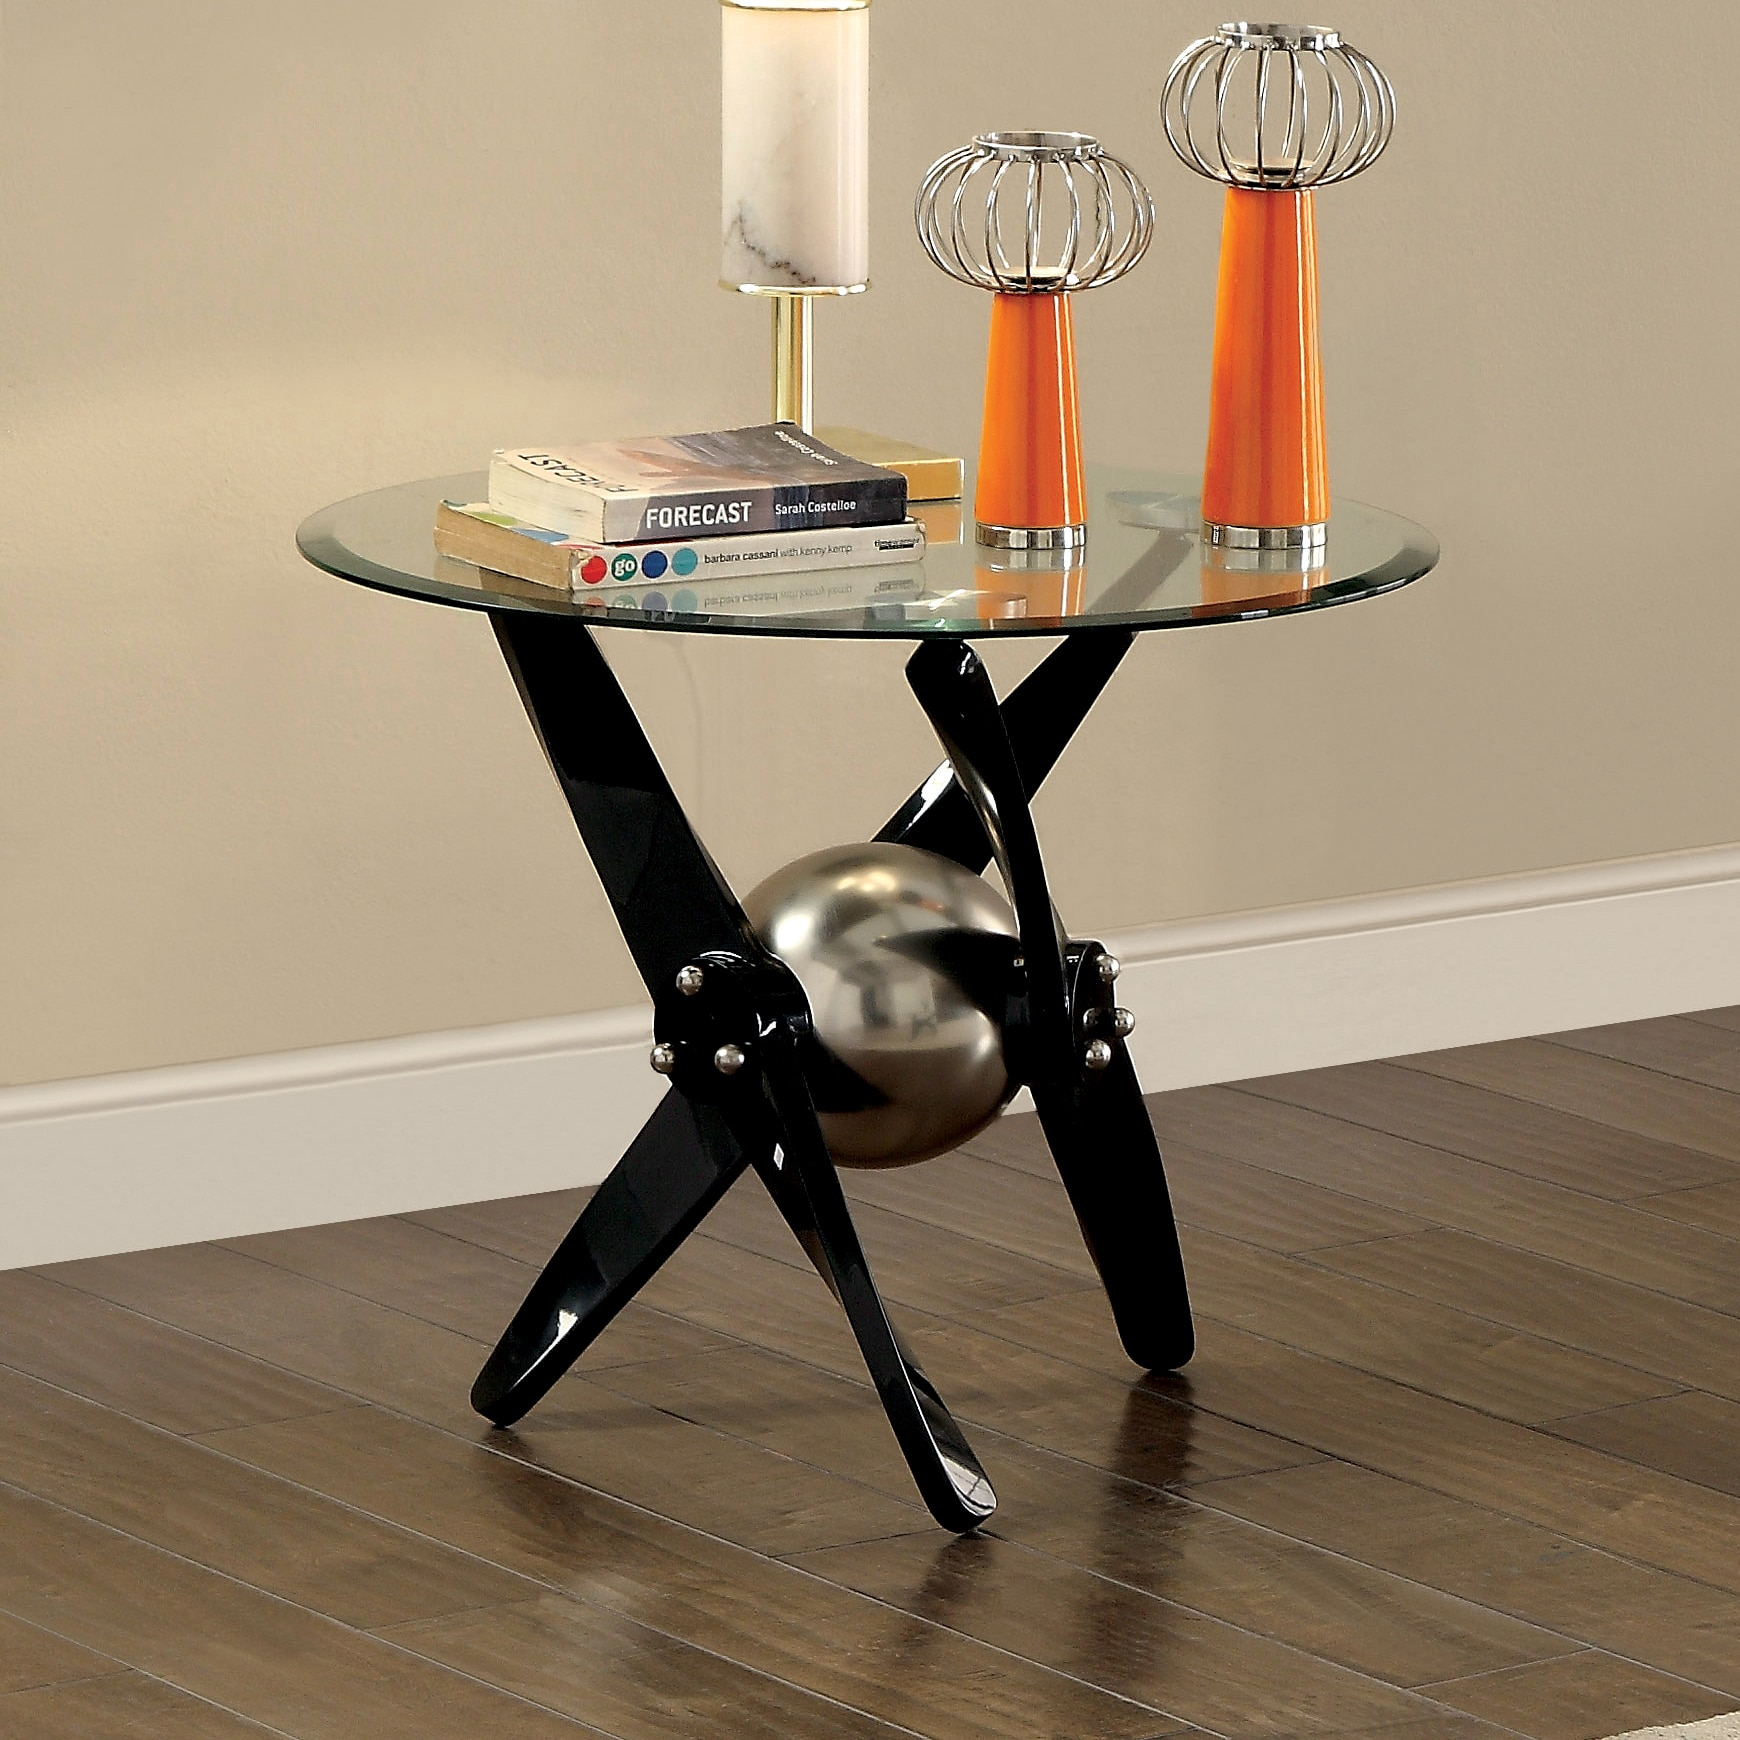 Furniture of america gene contemporary propeller style powder coated black end table